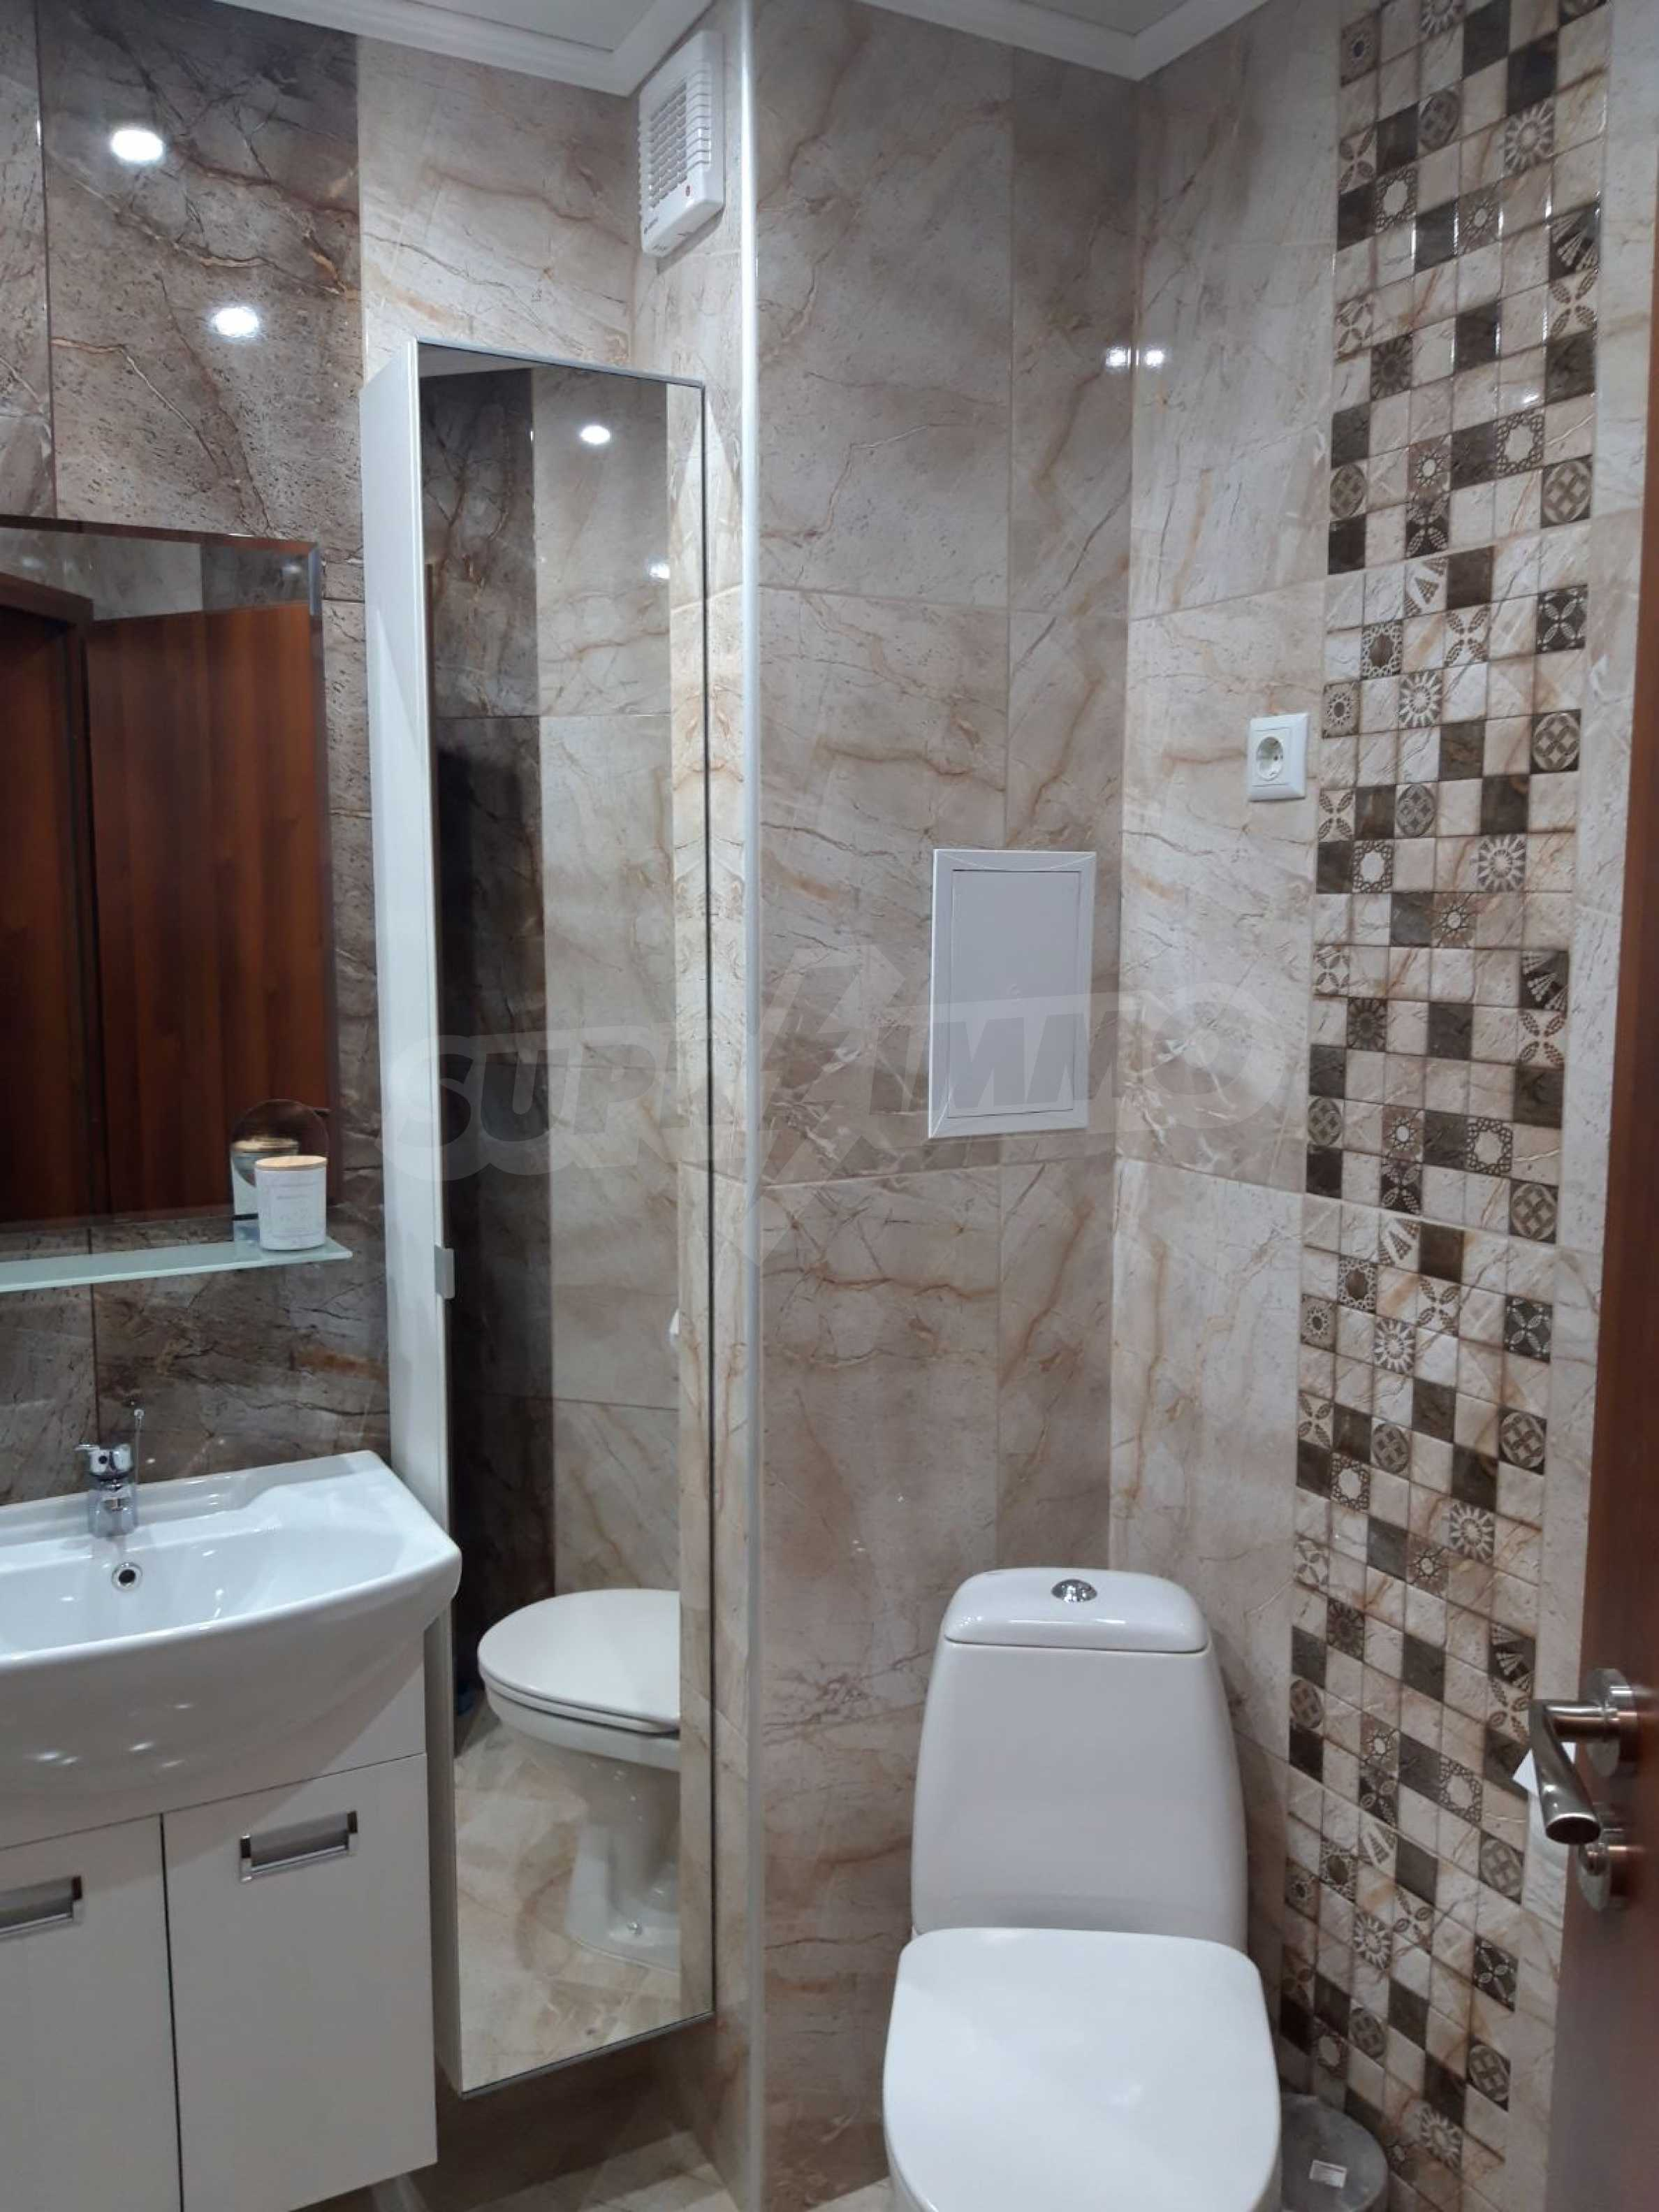 Brand new, one-bedroom apartment with parking space in Vitosha district 5